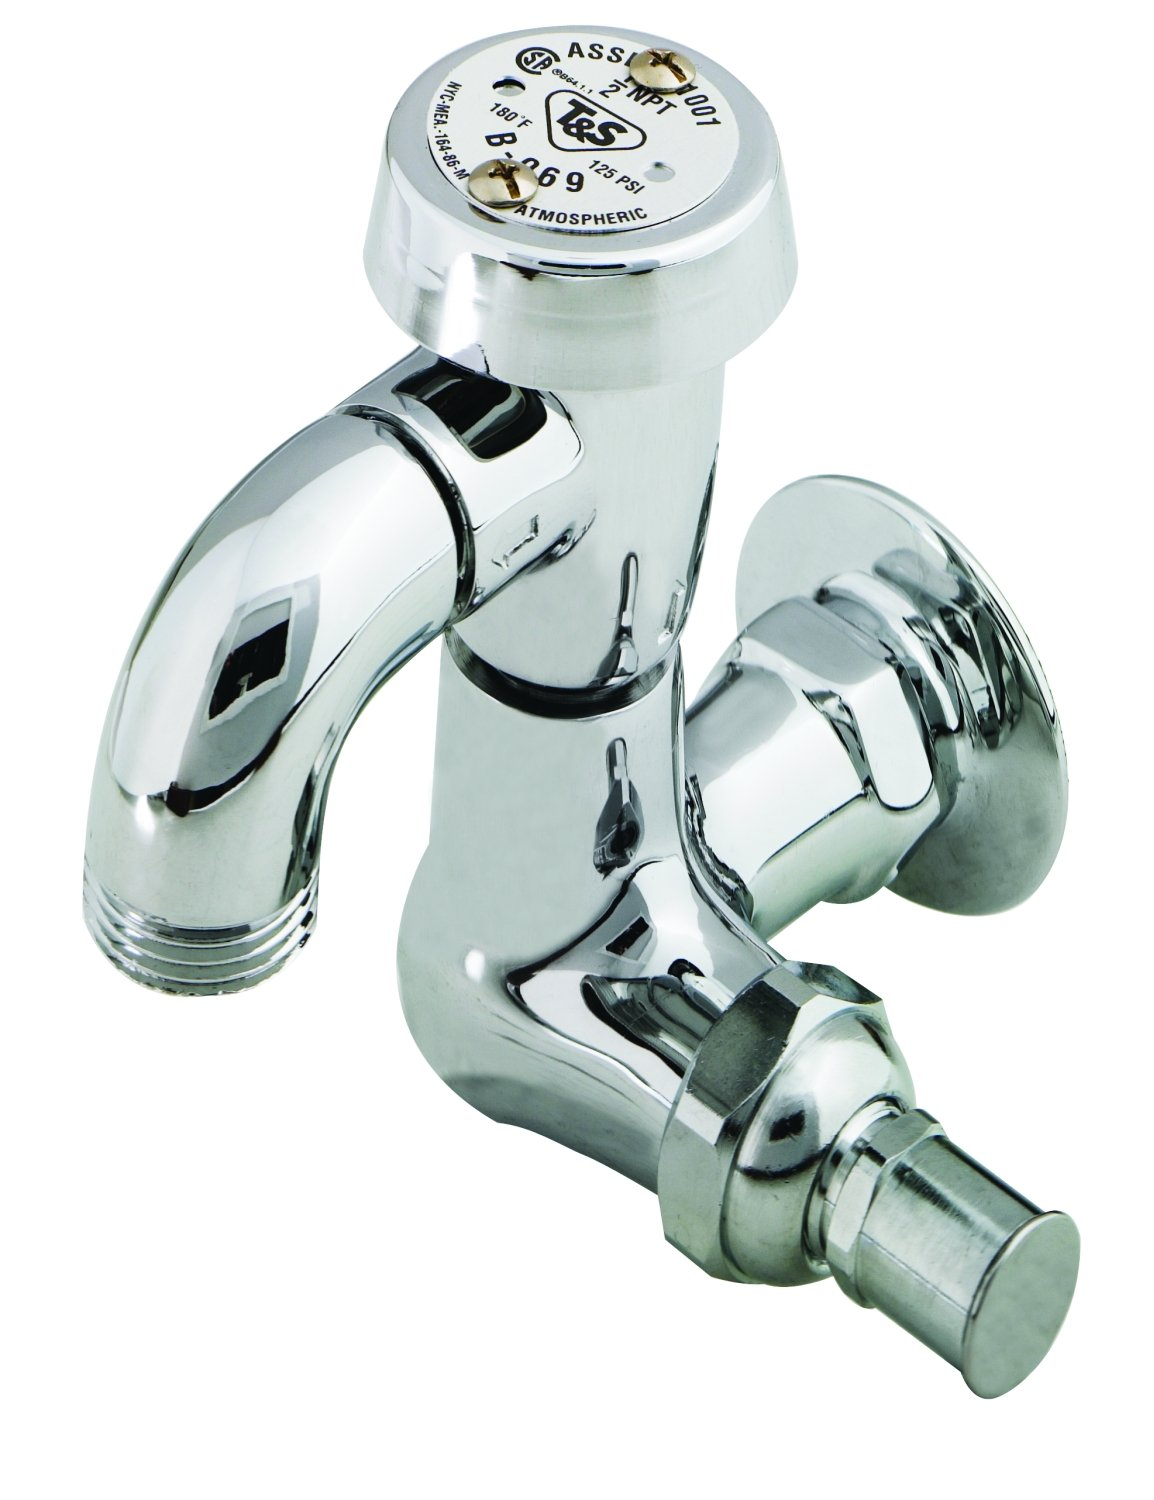 3//4 NPT Female Flanged Inlet Vacuum Breaker Polished 3//4 Hose Threads T/&S Brass B-0737-POL Sill Faucet